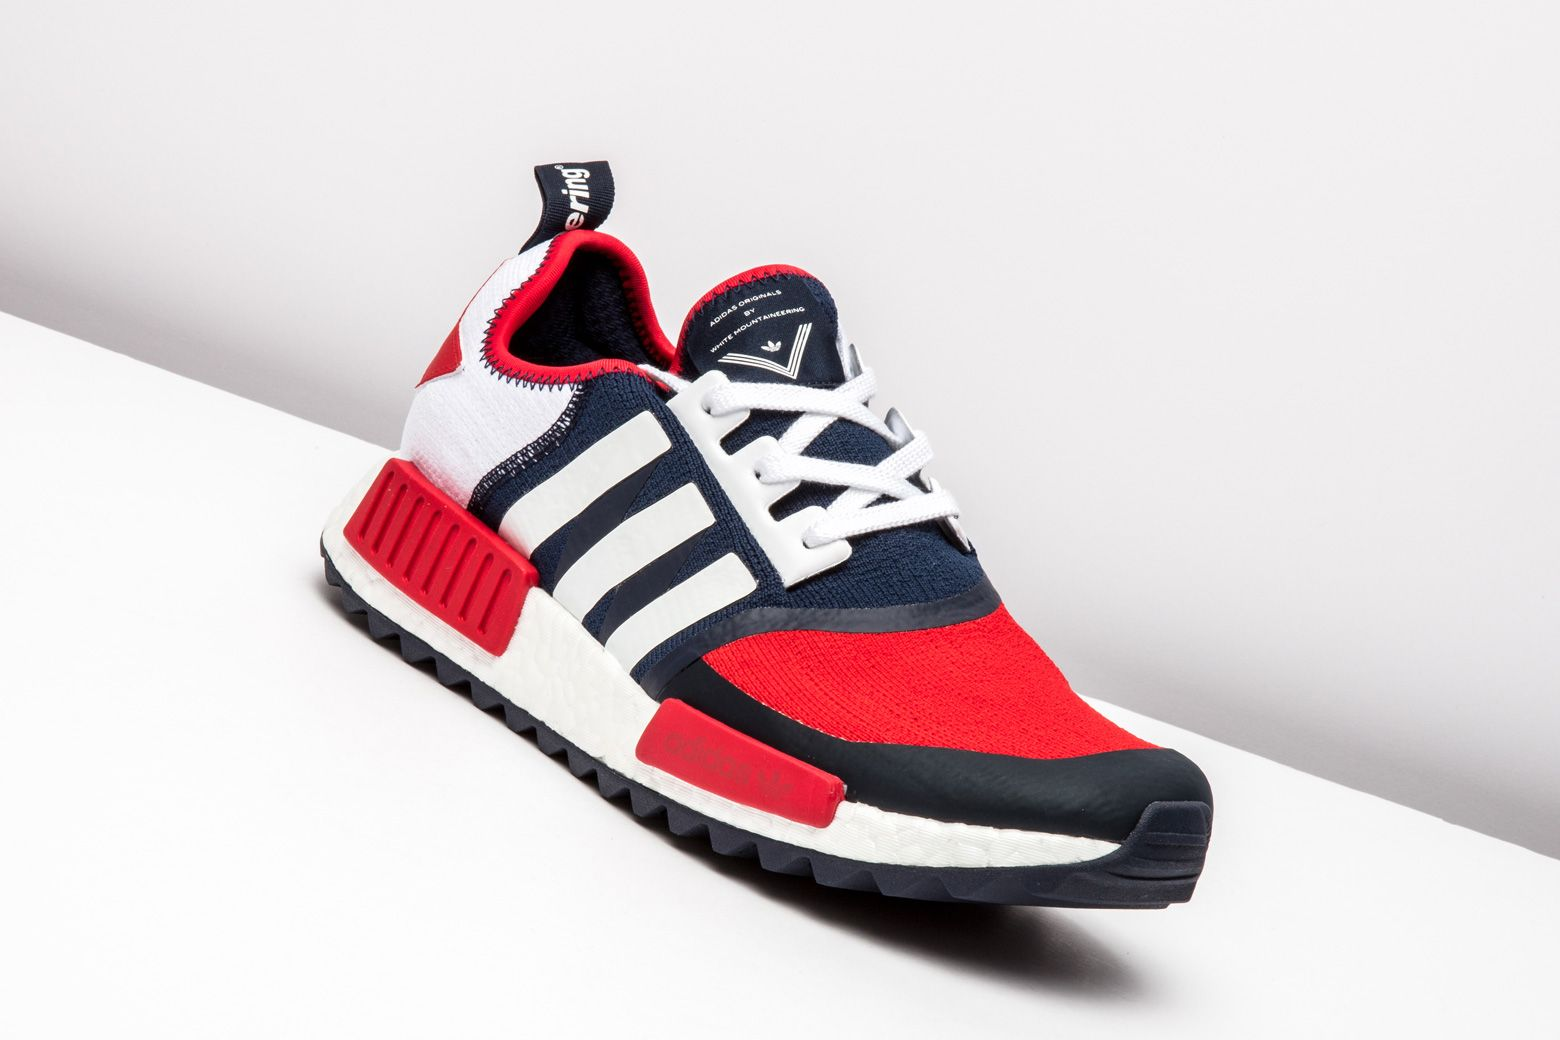 competitive price b3712 29d70 Adidas WM NMD Trail PK Collegiate Navy/Ftw White 'White ...